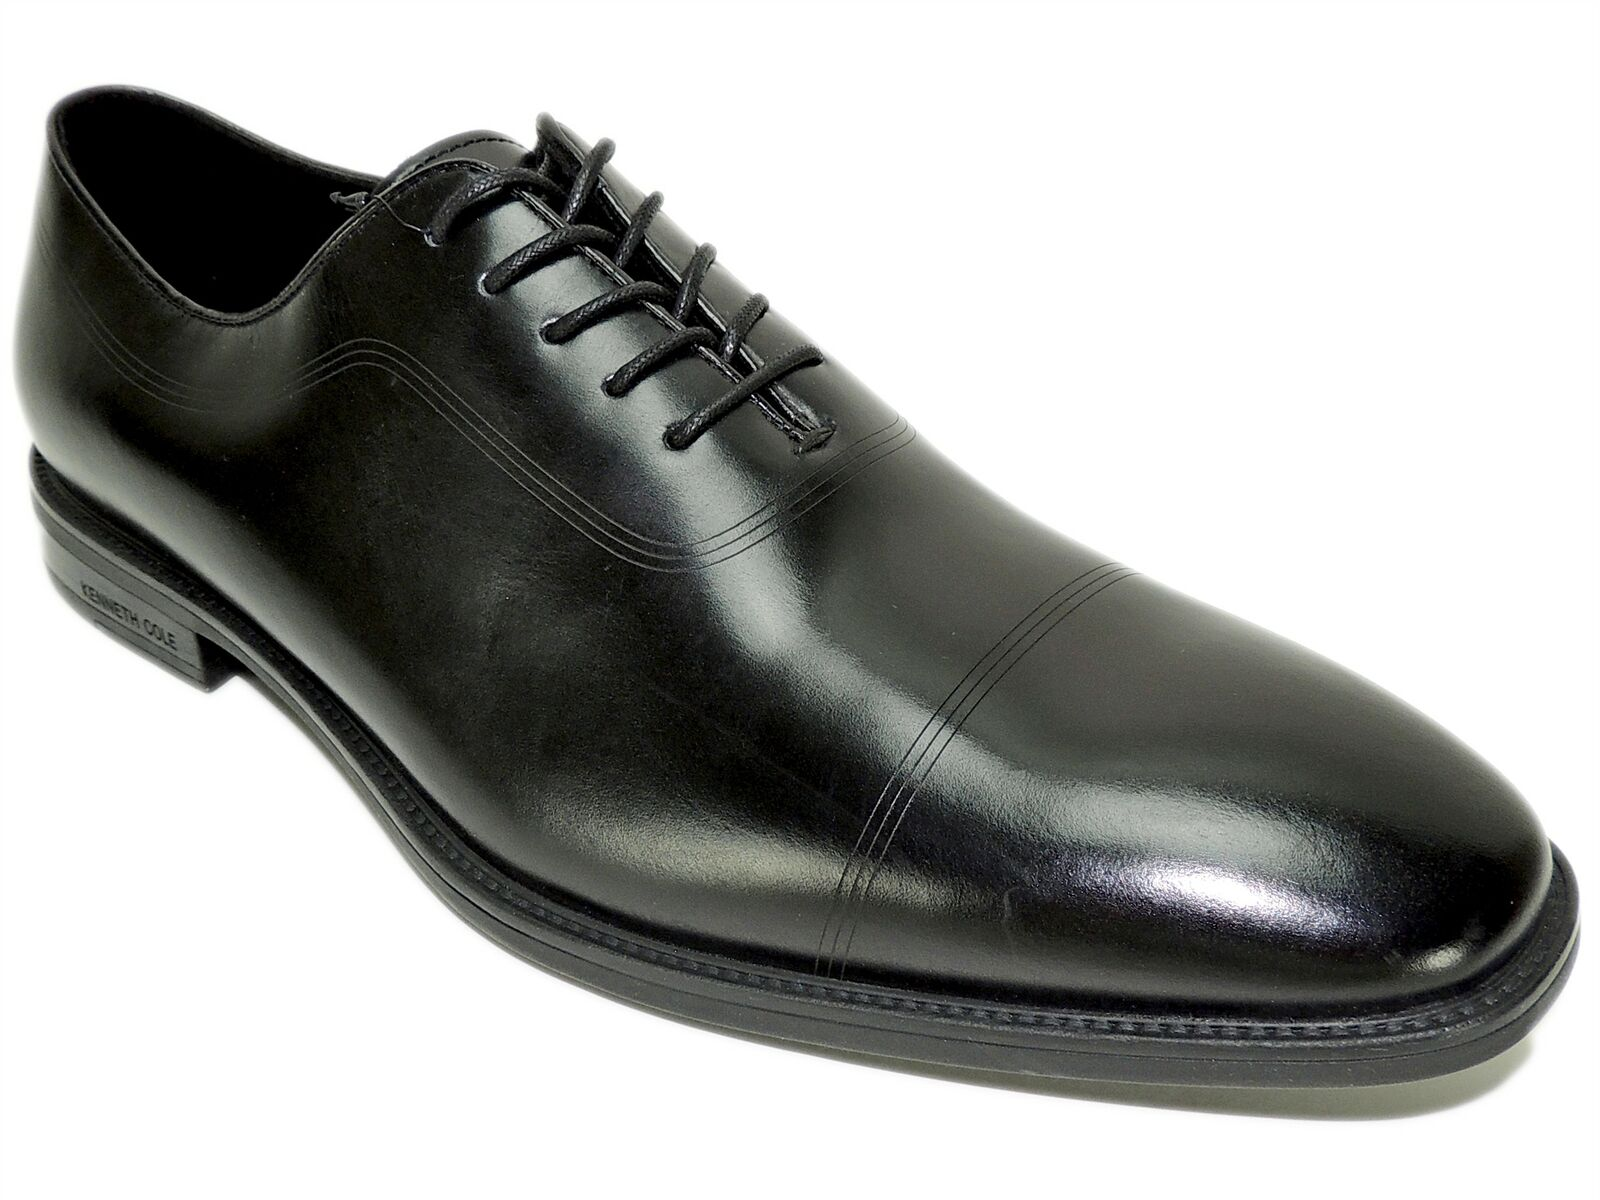 Kenneth Cole New York Men's Ticketpod Lace-Up B Oxfords Black Leather Size 9 M